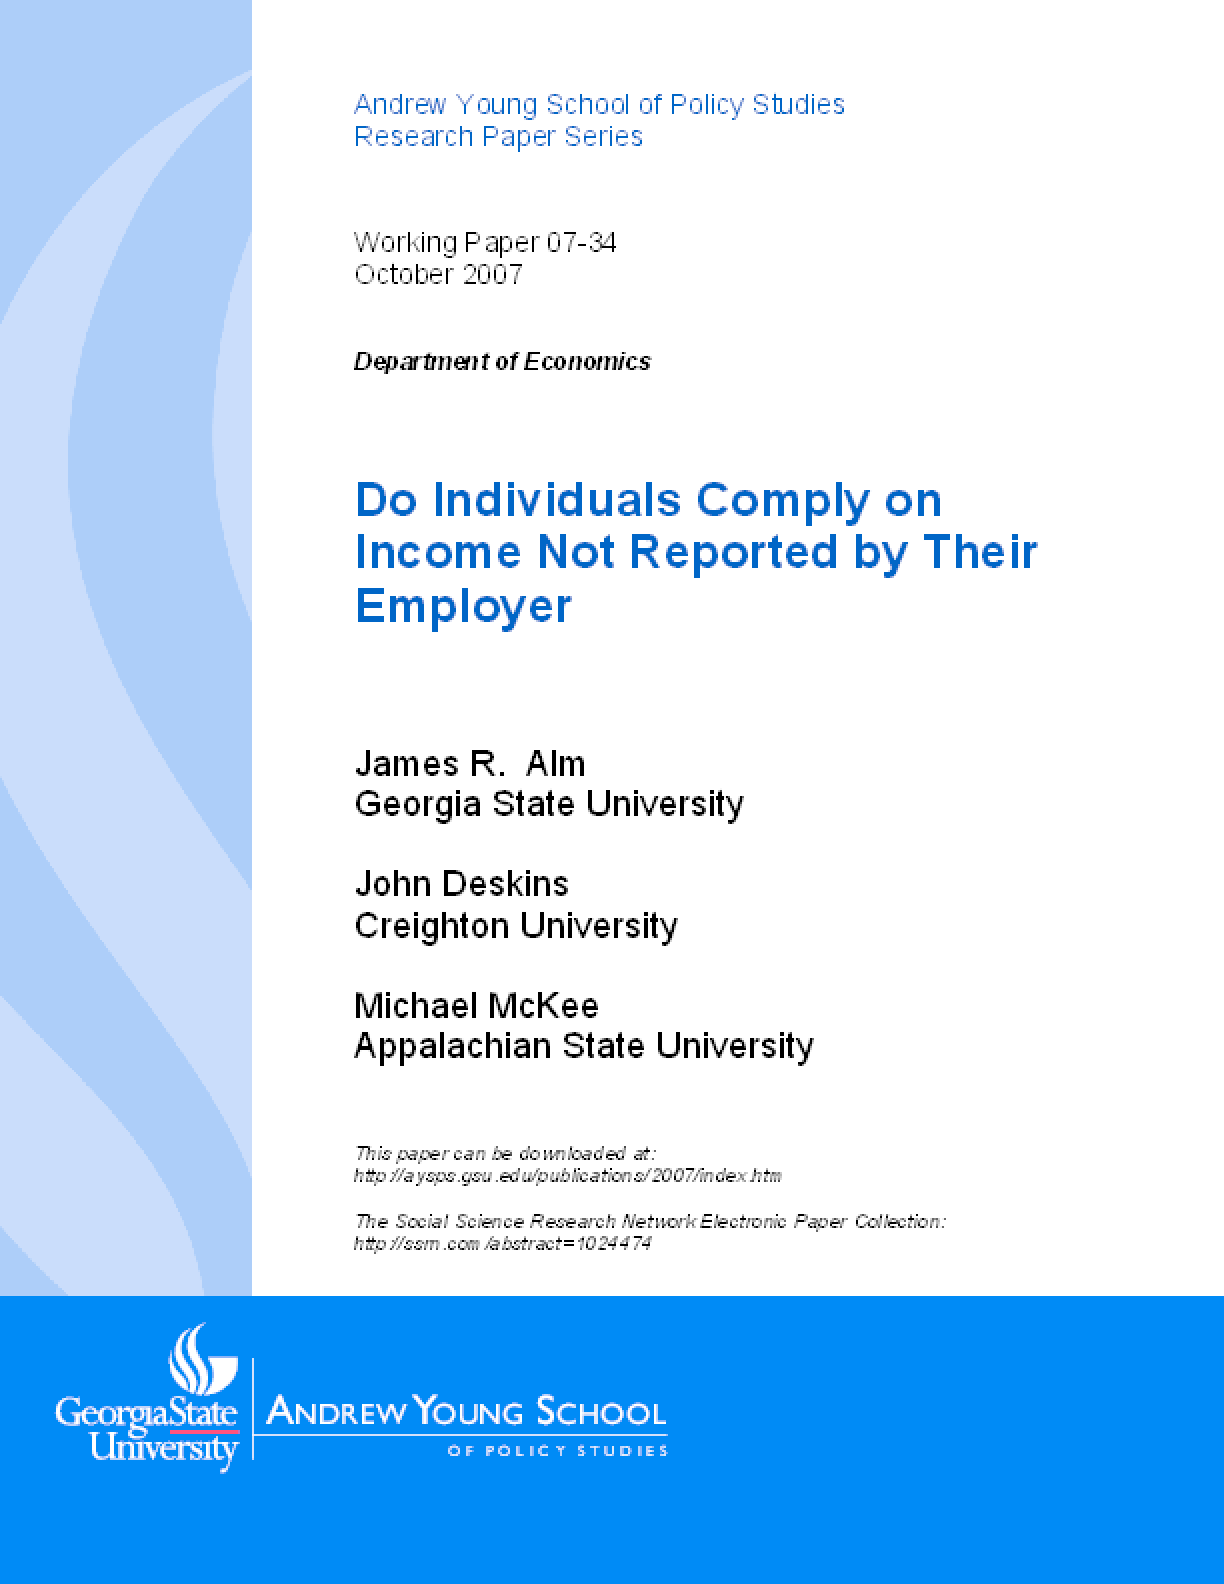 Do Individuals Comply on Income Not Reported by Their Employer